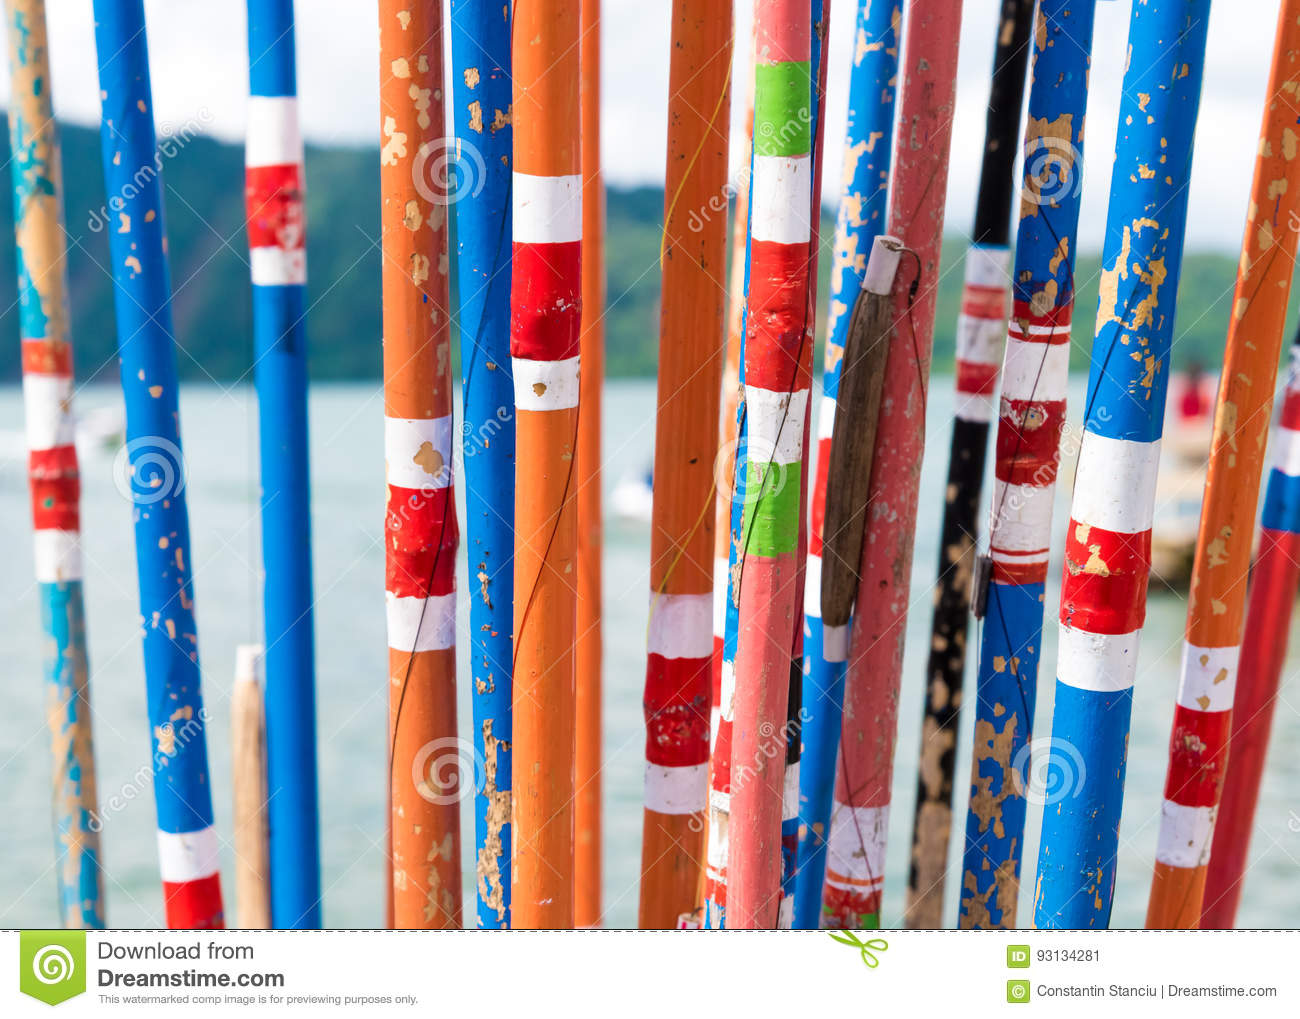 Colourful Traditional Bamboo Fishing Rods Stock Image - Image of ...